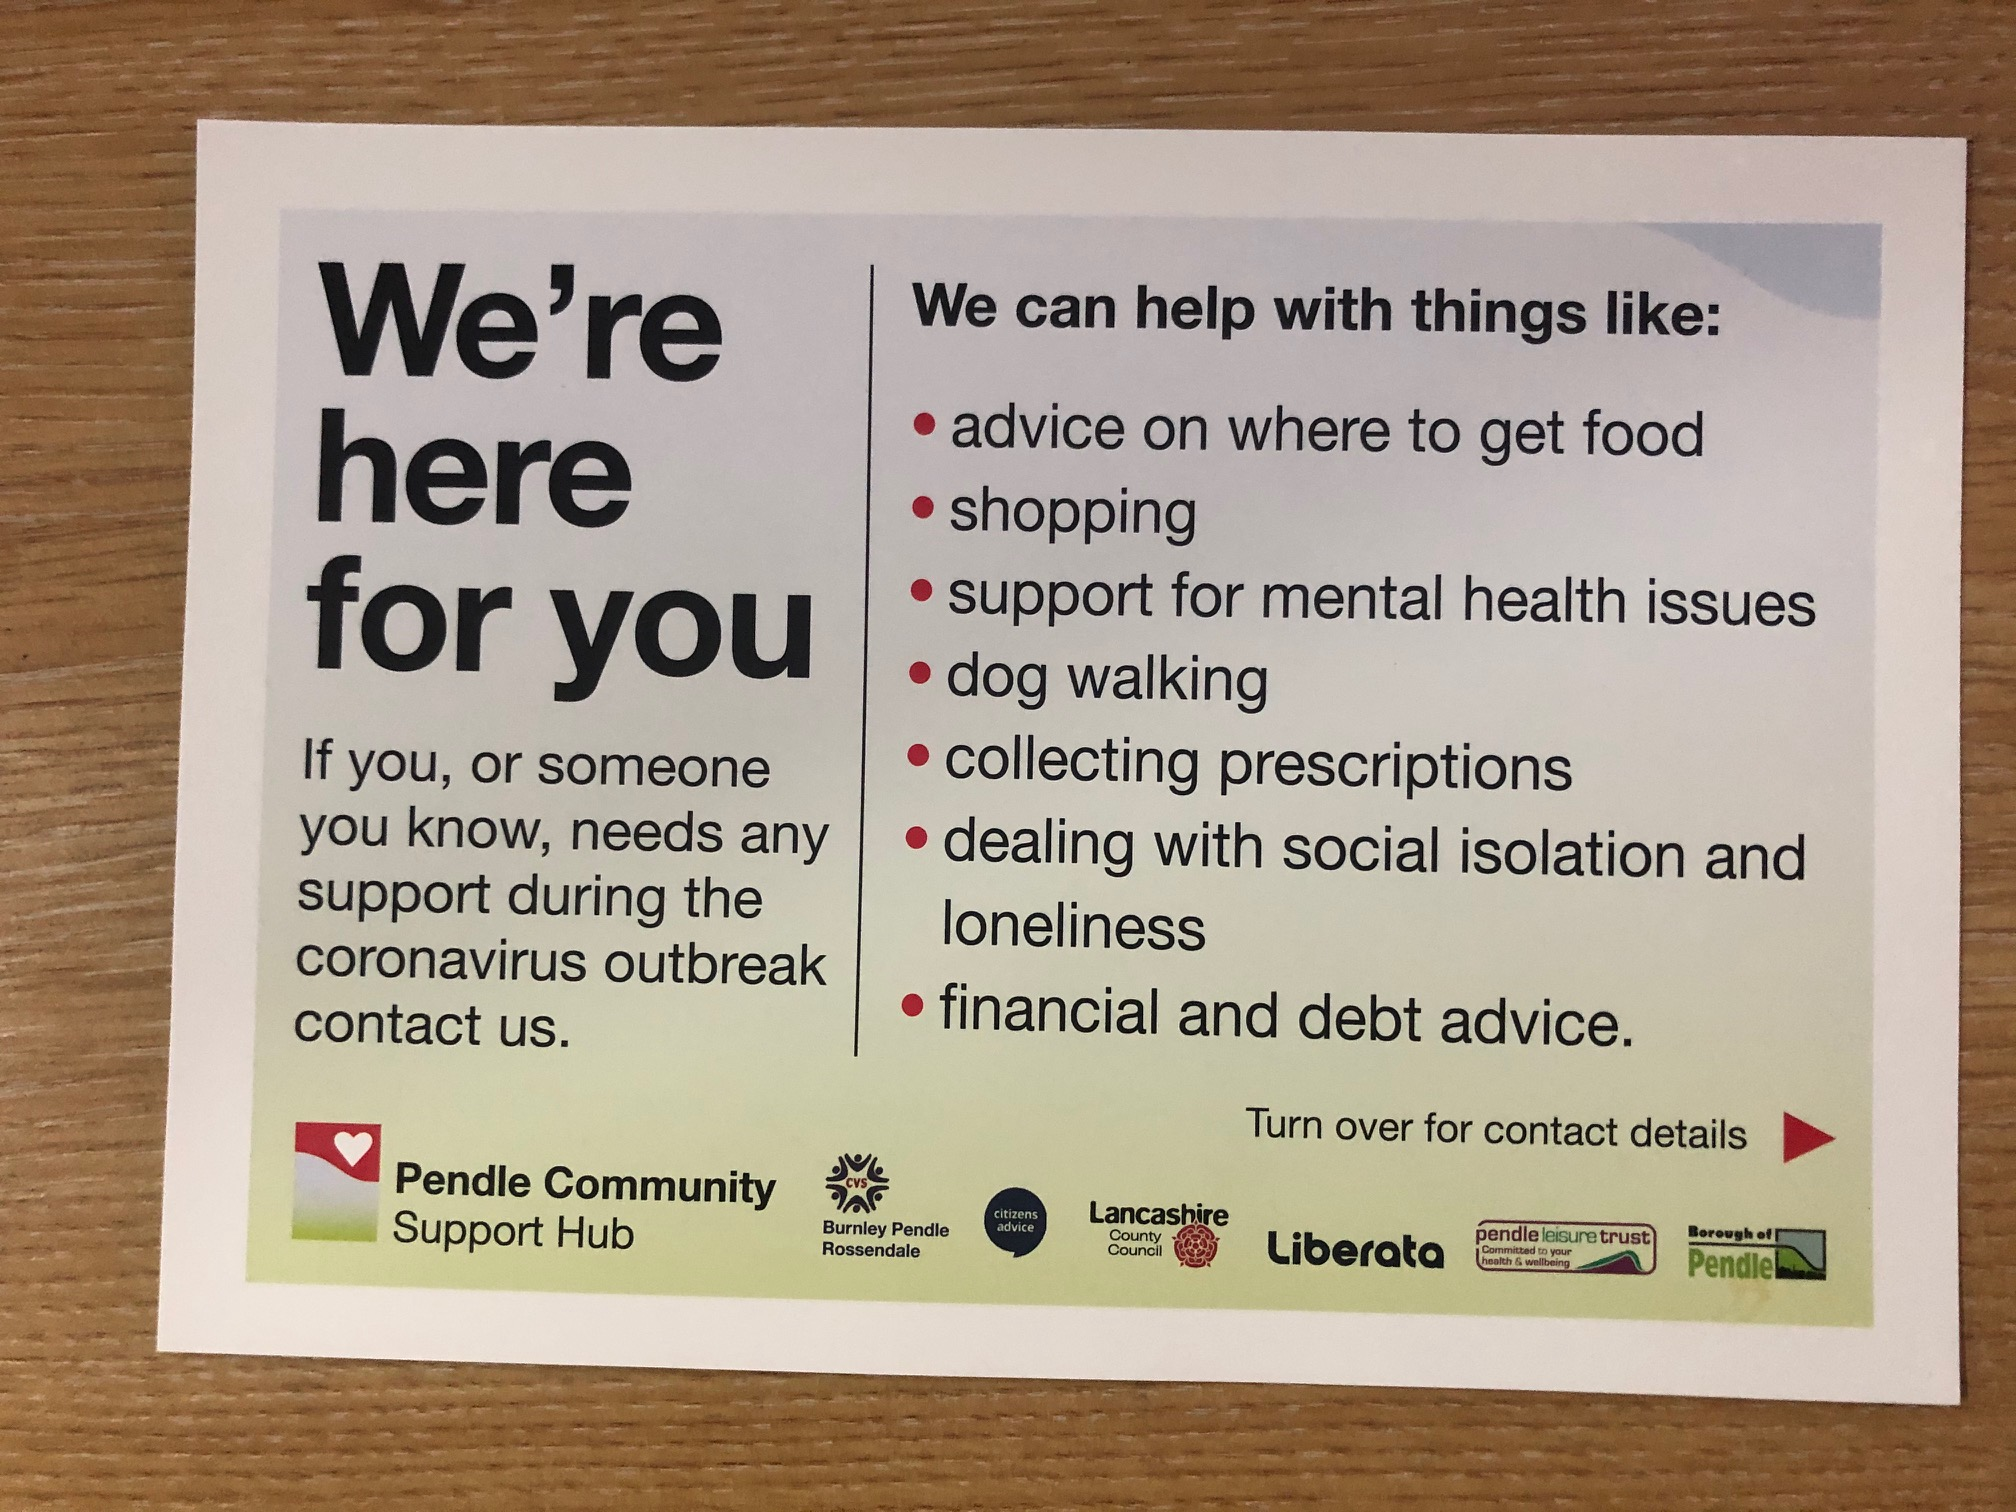 More than 40,000 postcards being delivered to Pendle homes promoting Community Support Hub